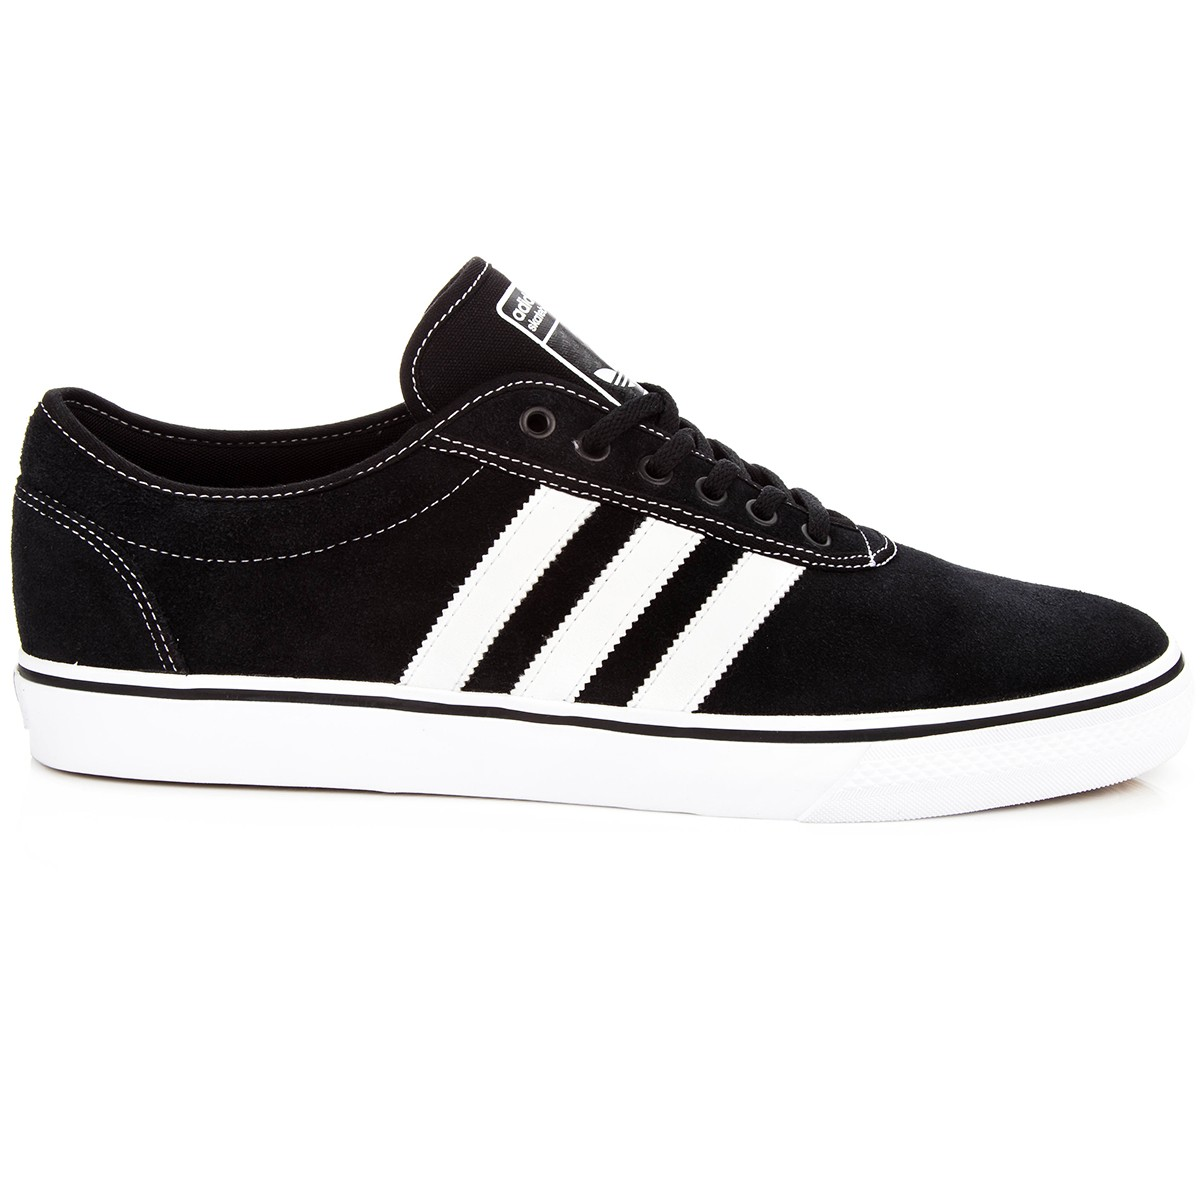 Adidas Gonzales Shoes Price